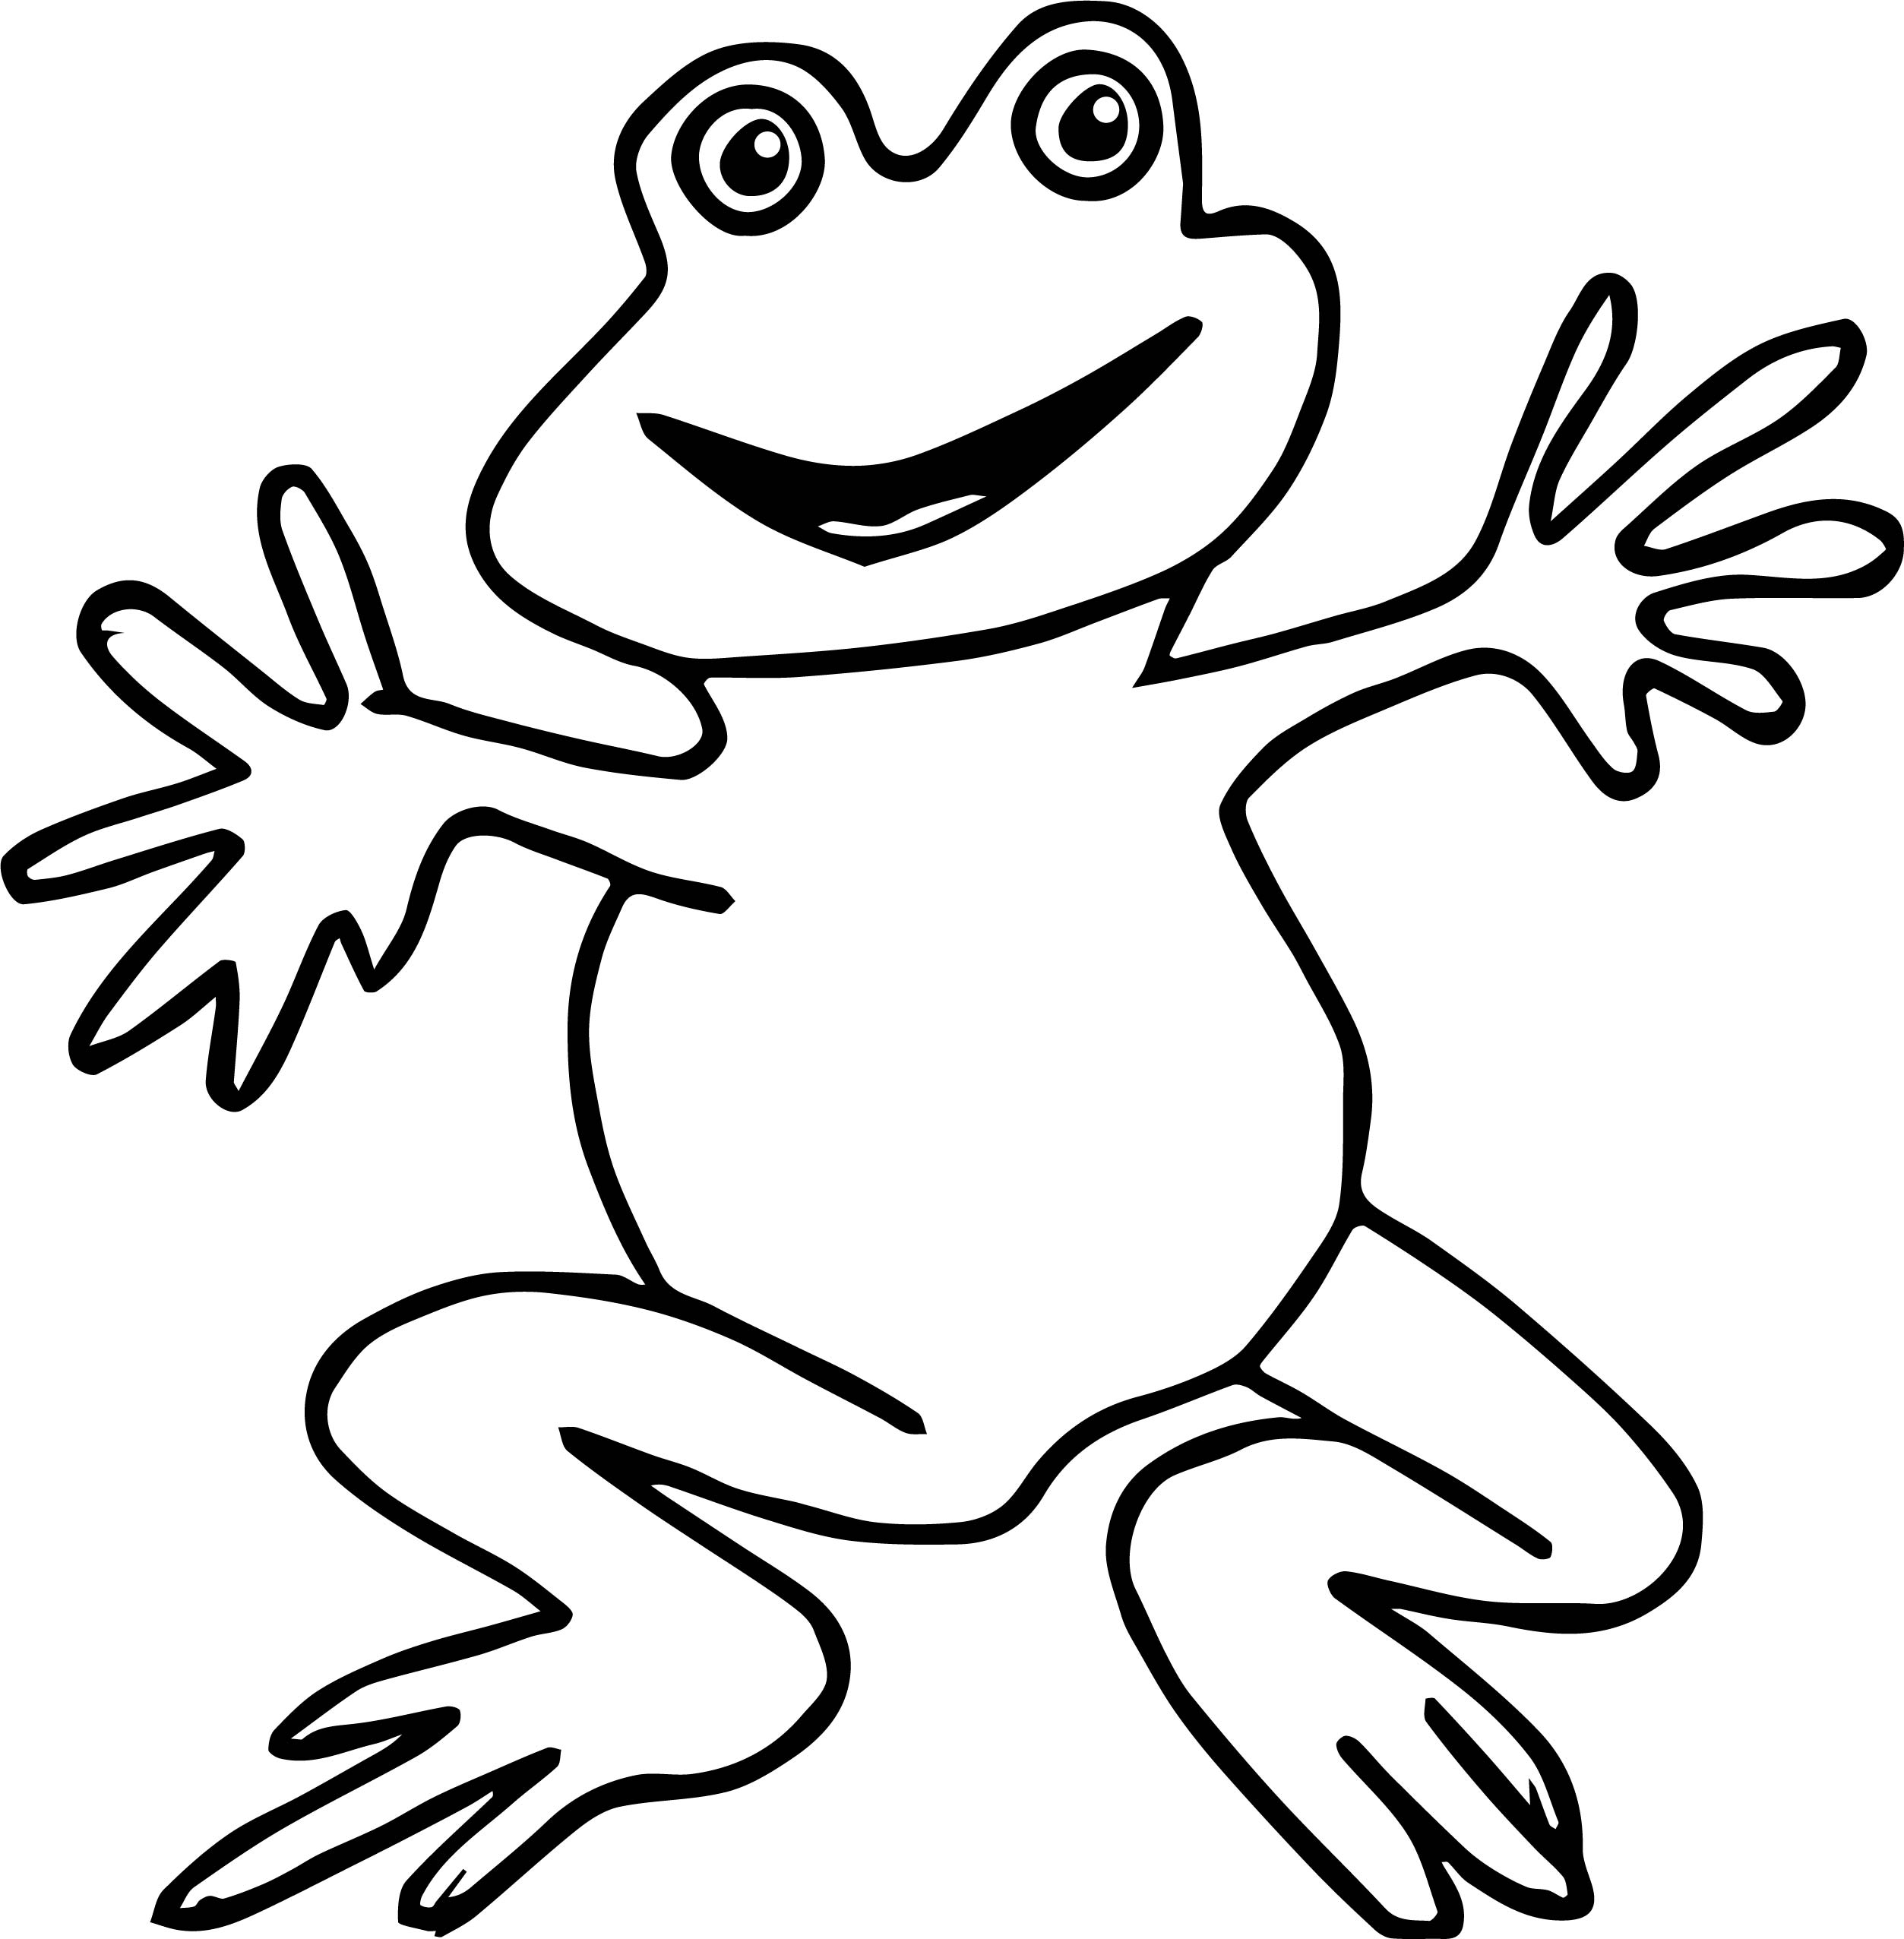 hello frog coloring page - Frogs Coloring Pages